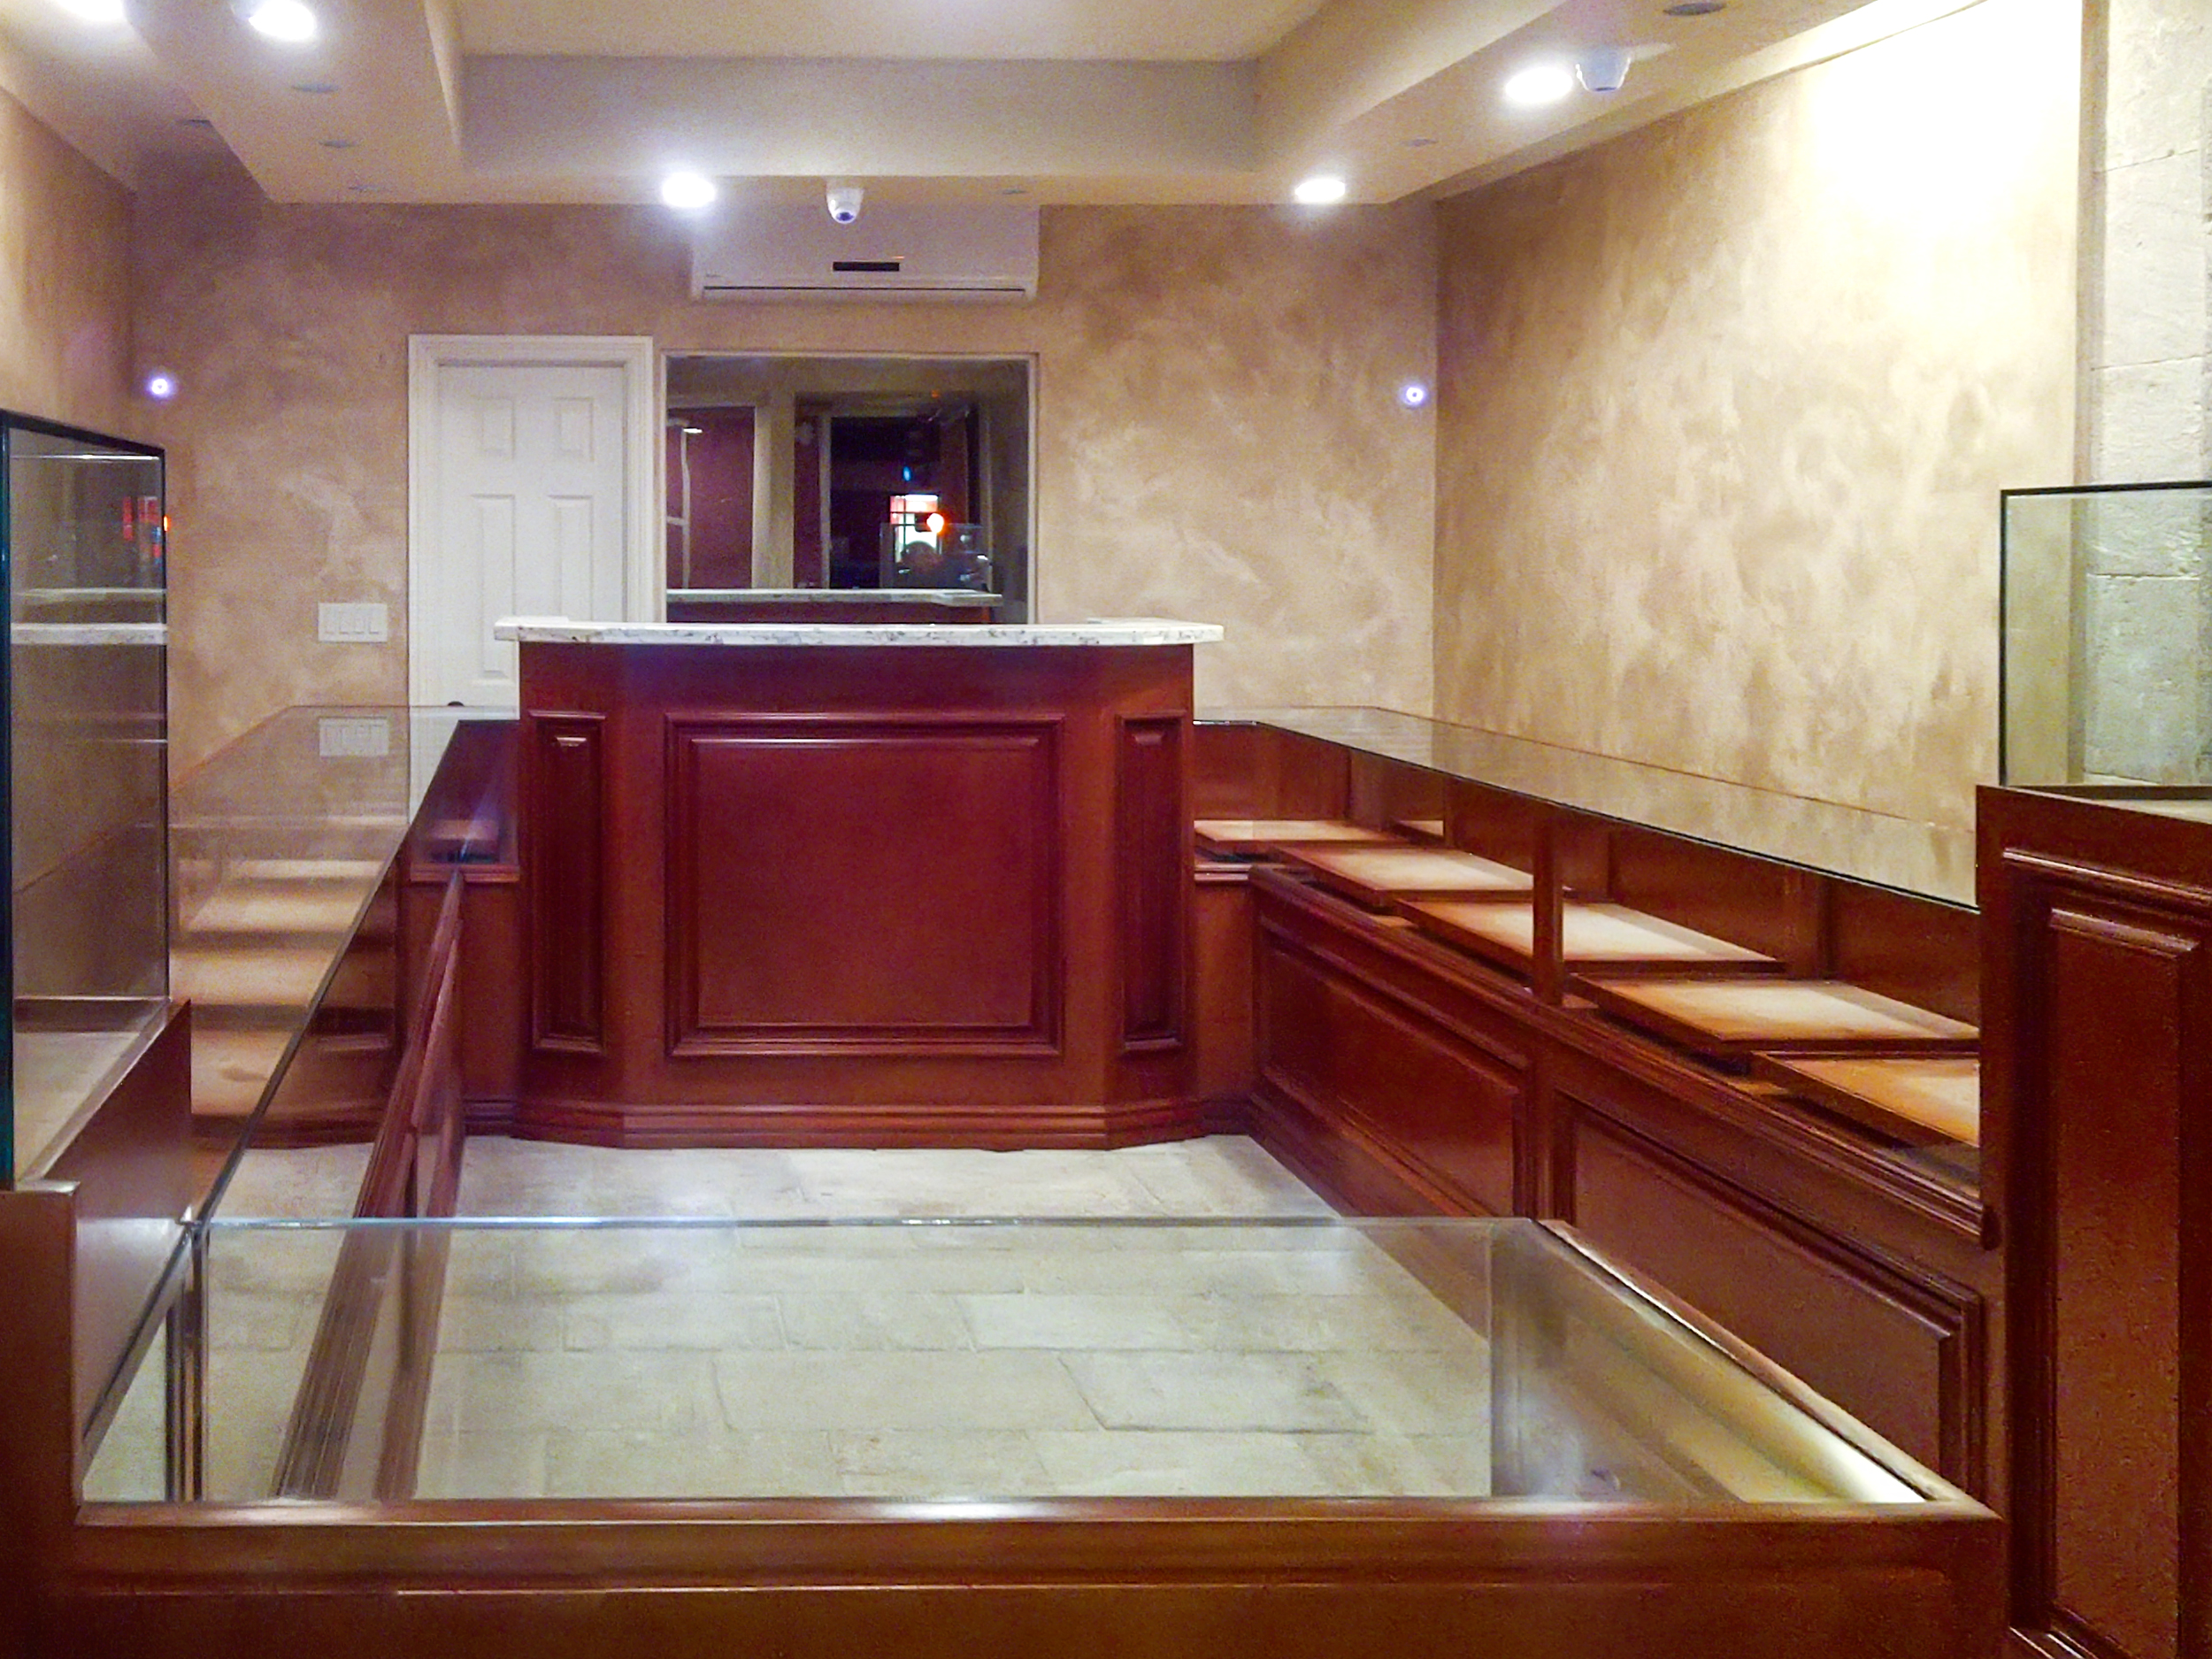 Jewelry Store Renovation